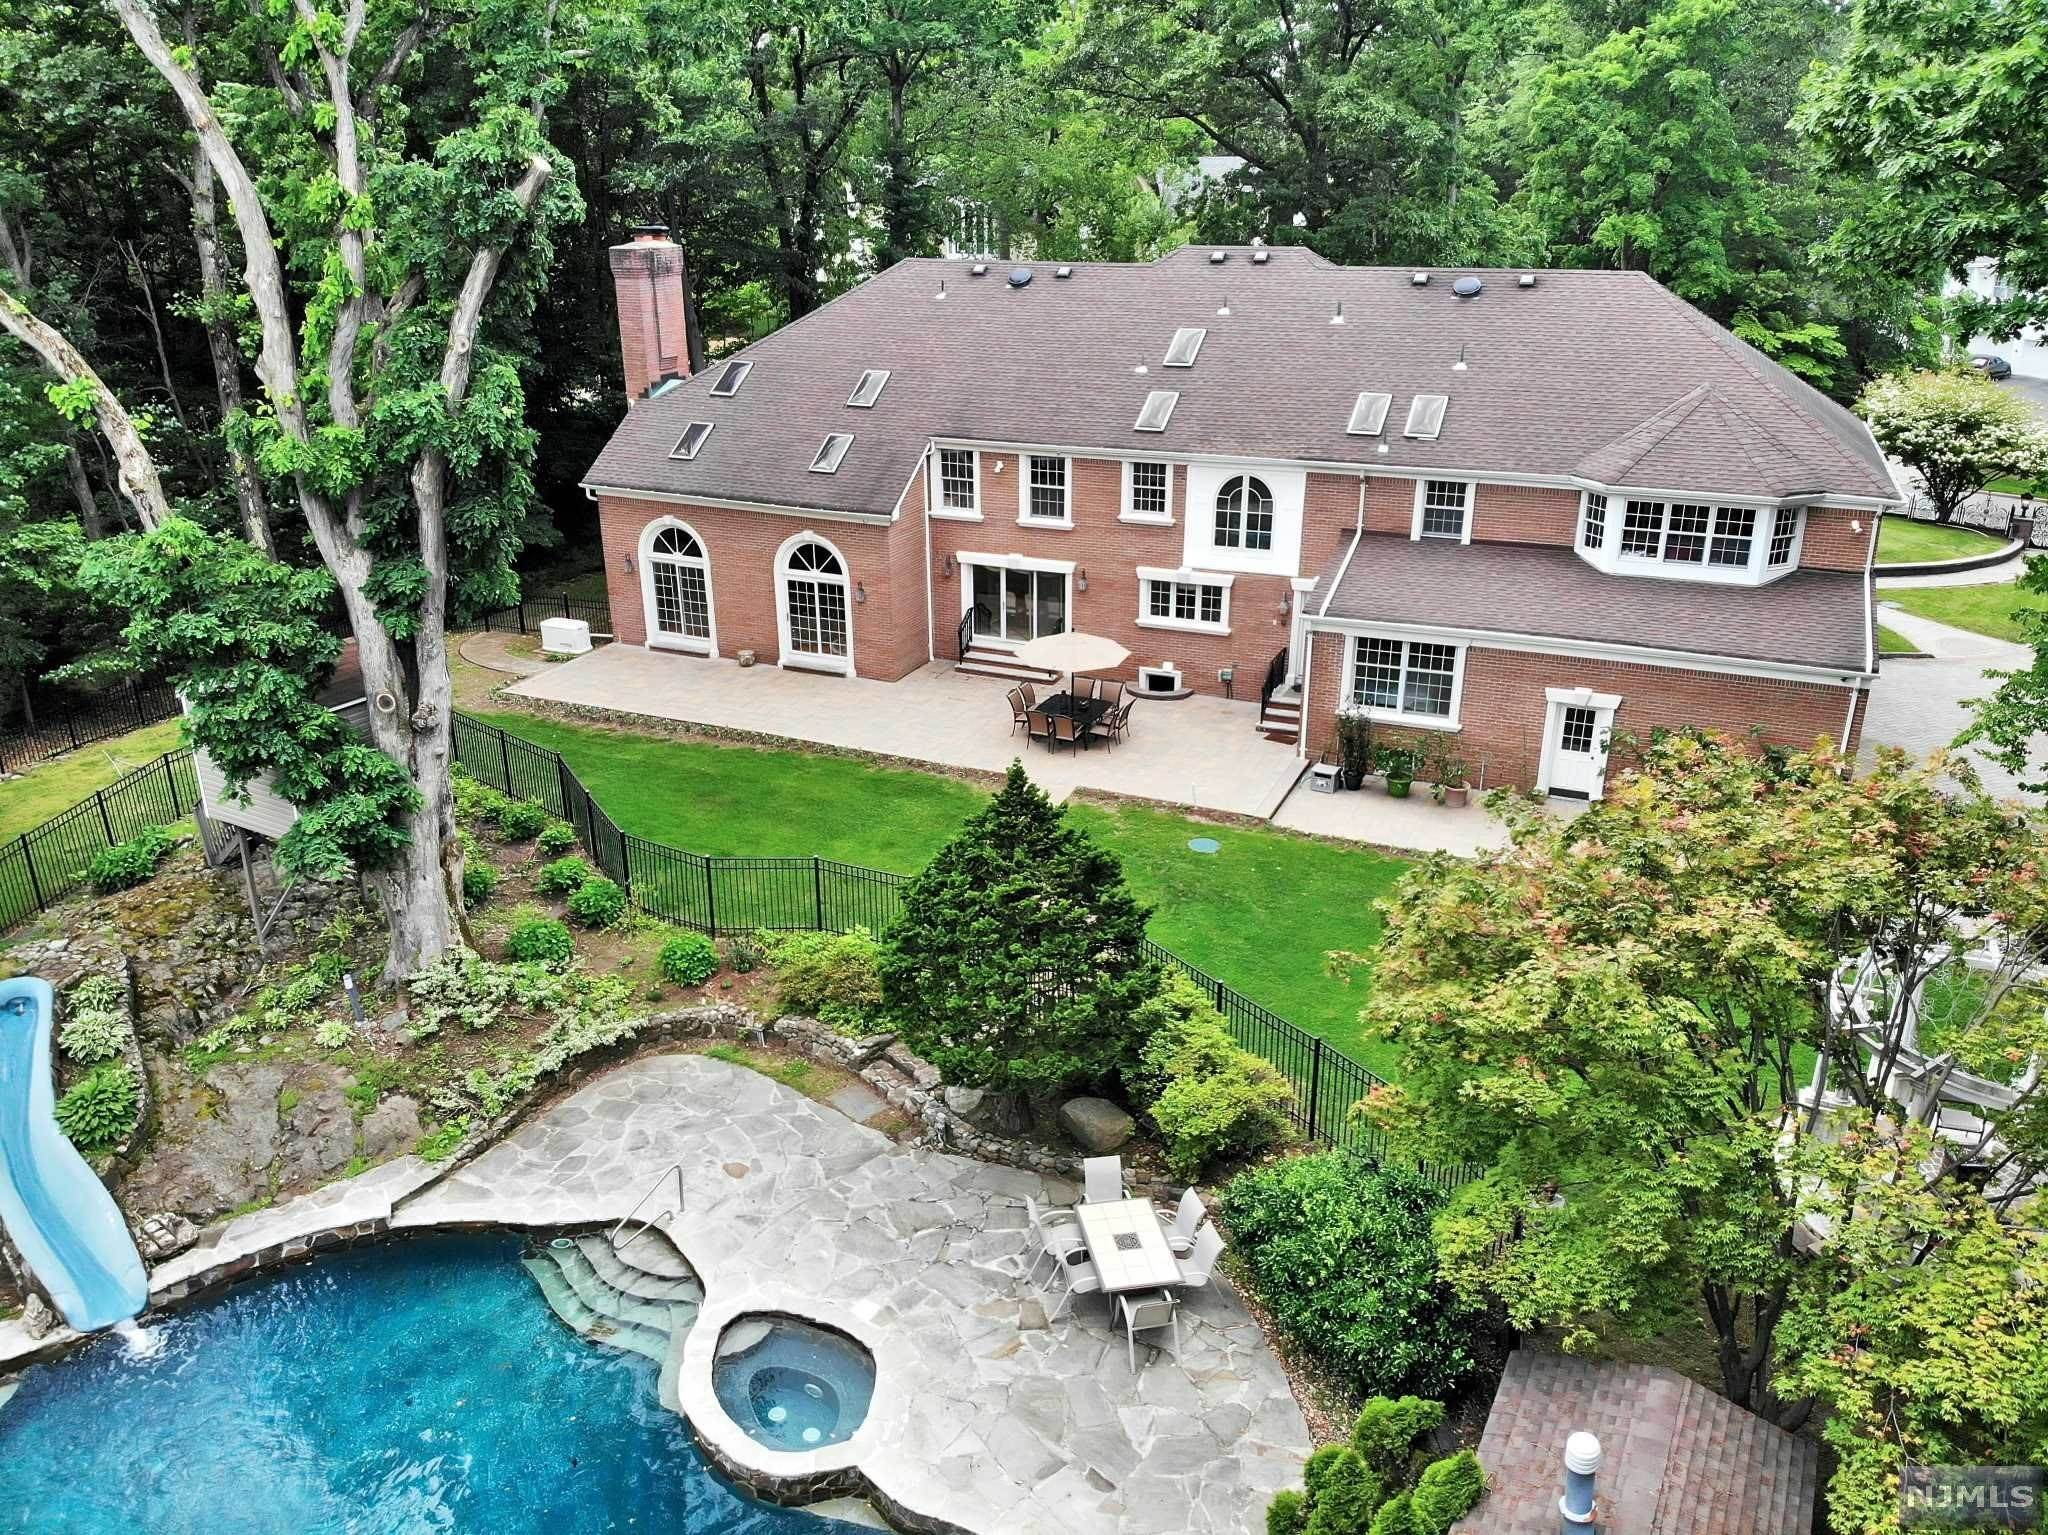 2. Single Family Home for Sale at 687 Butternut Drive Franklin Lakes, New Jersey, 07417 United States